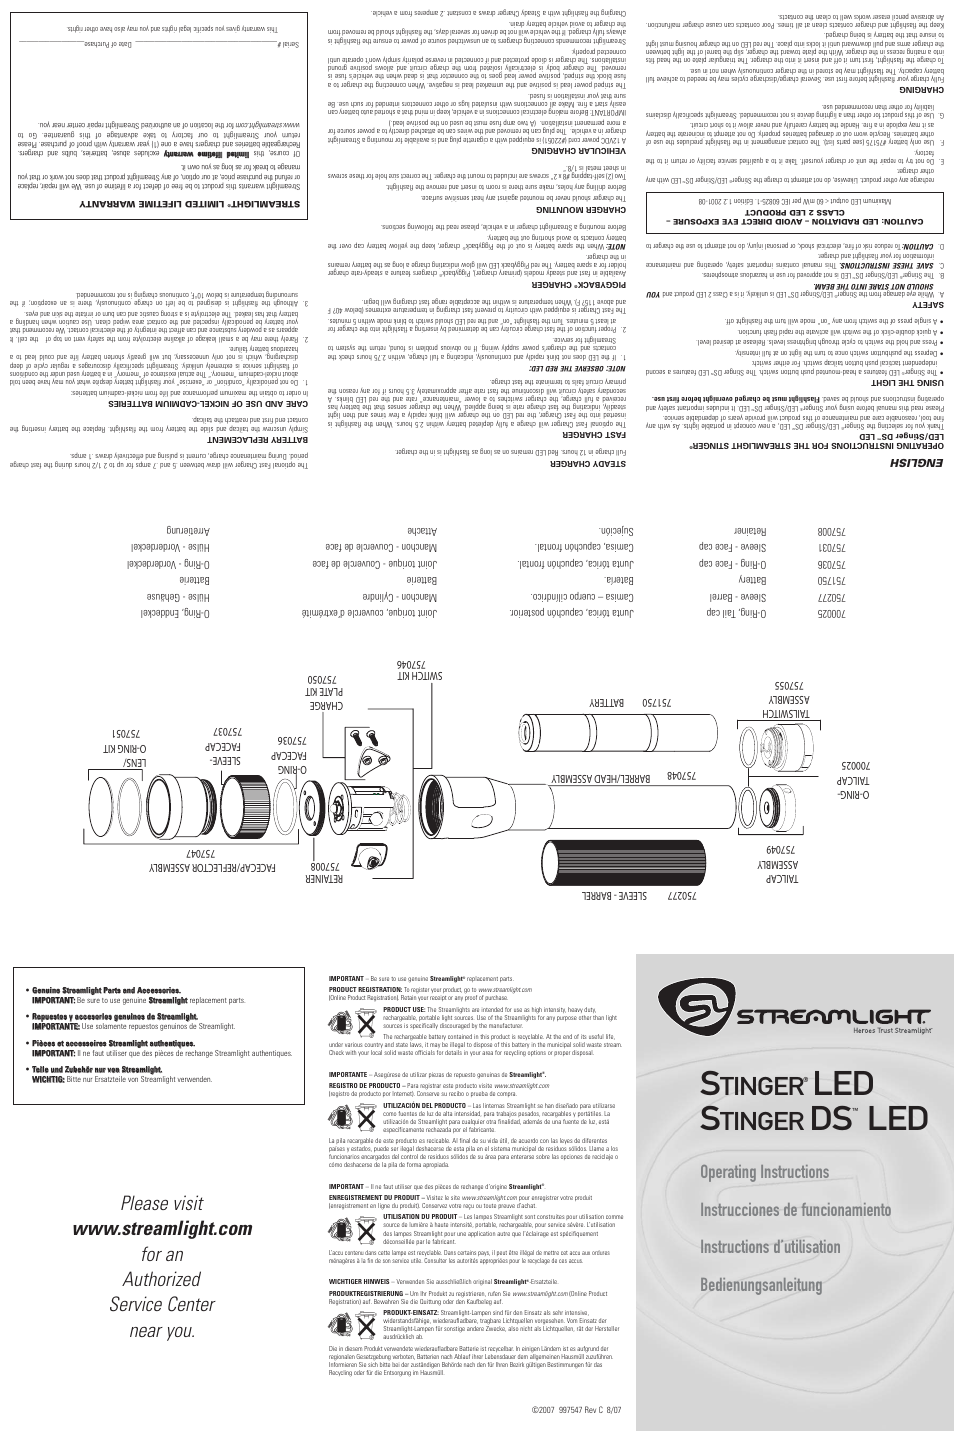 StreamLight STINGER 757055 User Manual   2 pages   Also